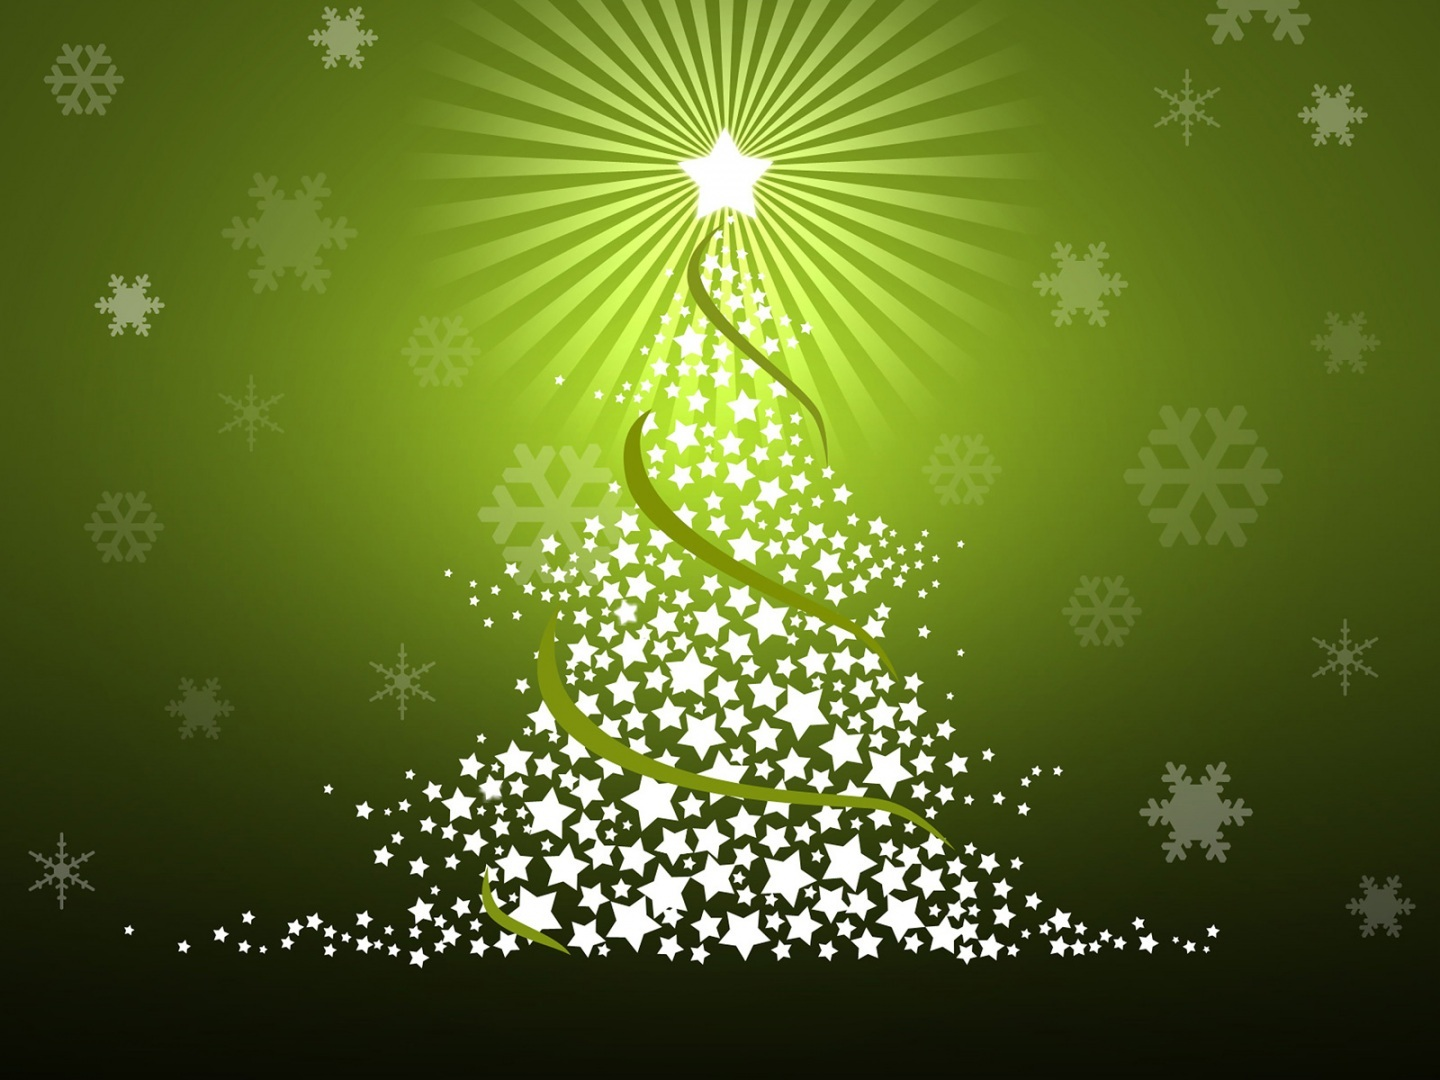 Christmas-Live-Free-Android-Apps-on-Google-Play-×1080-Xmas-For-Android-wallpaper-wp3803783